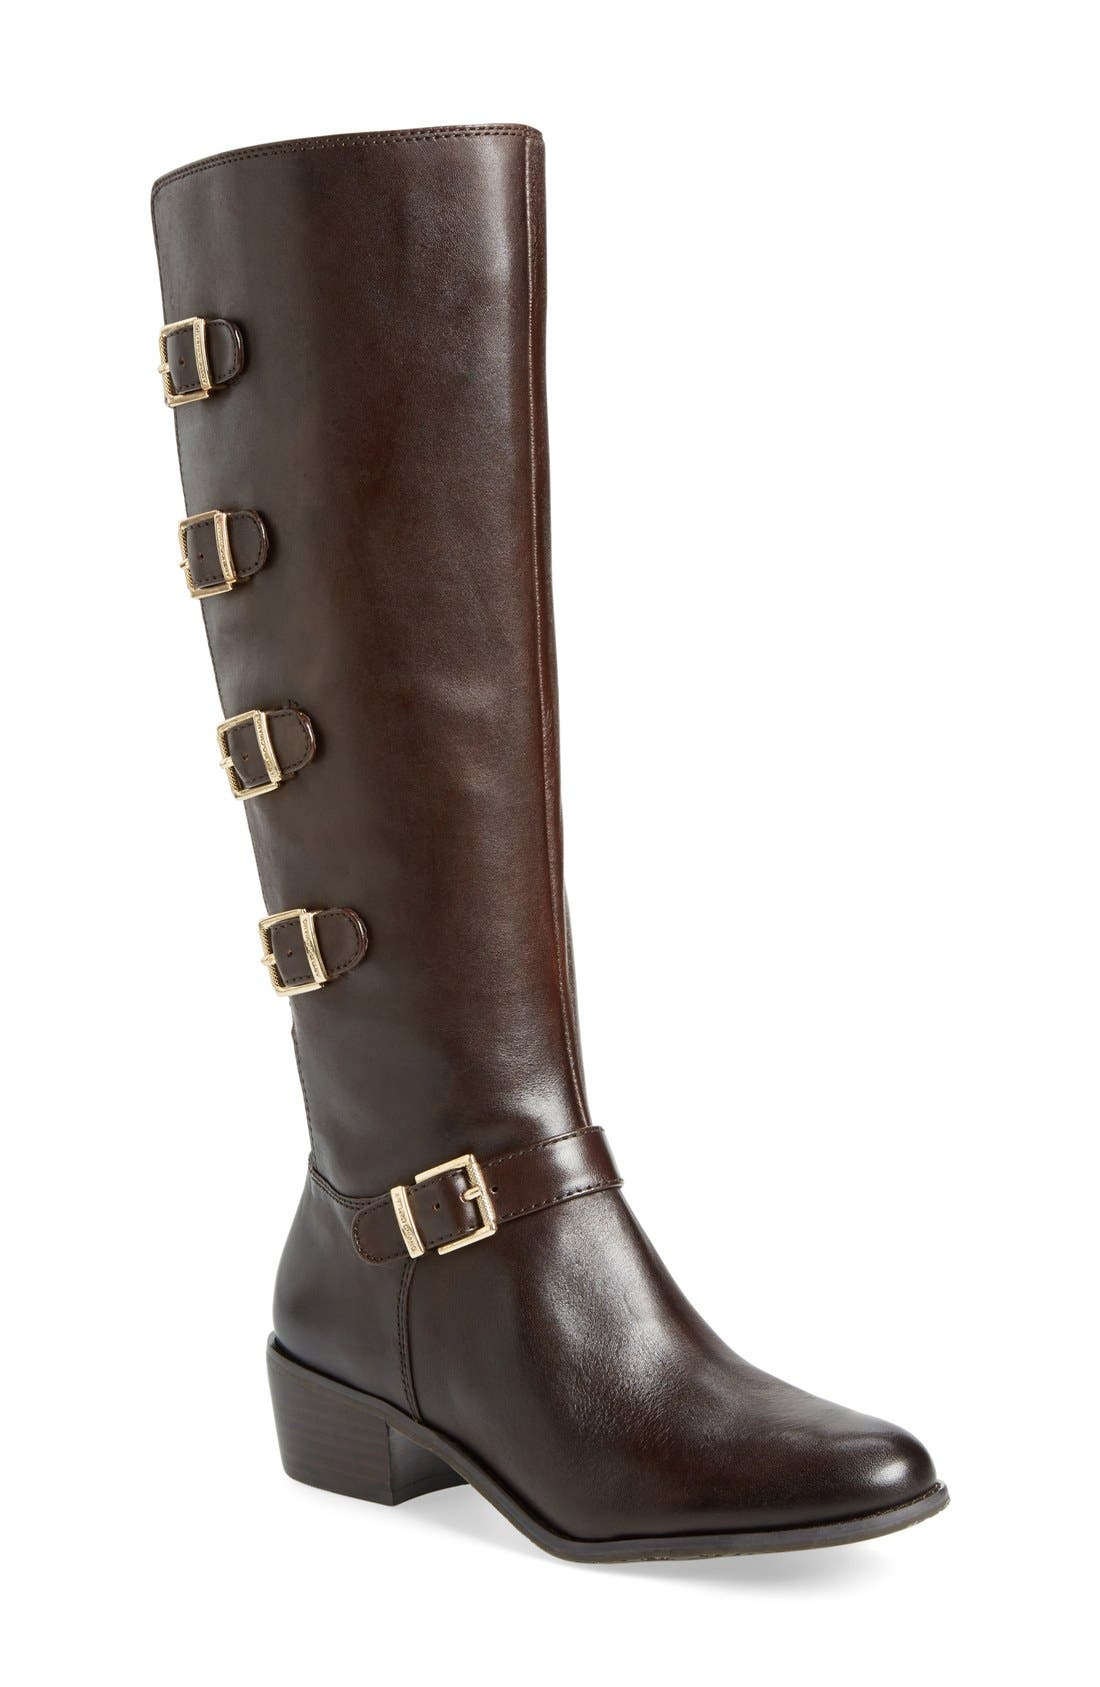 Alternate Image 1 Selected - Arturo Chiang'Beacon' Tall Buckle Boot (Women)